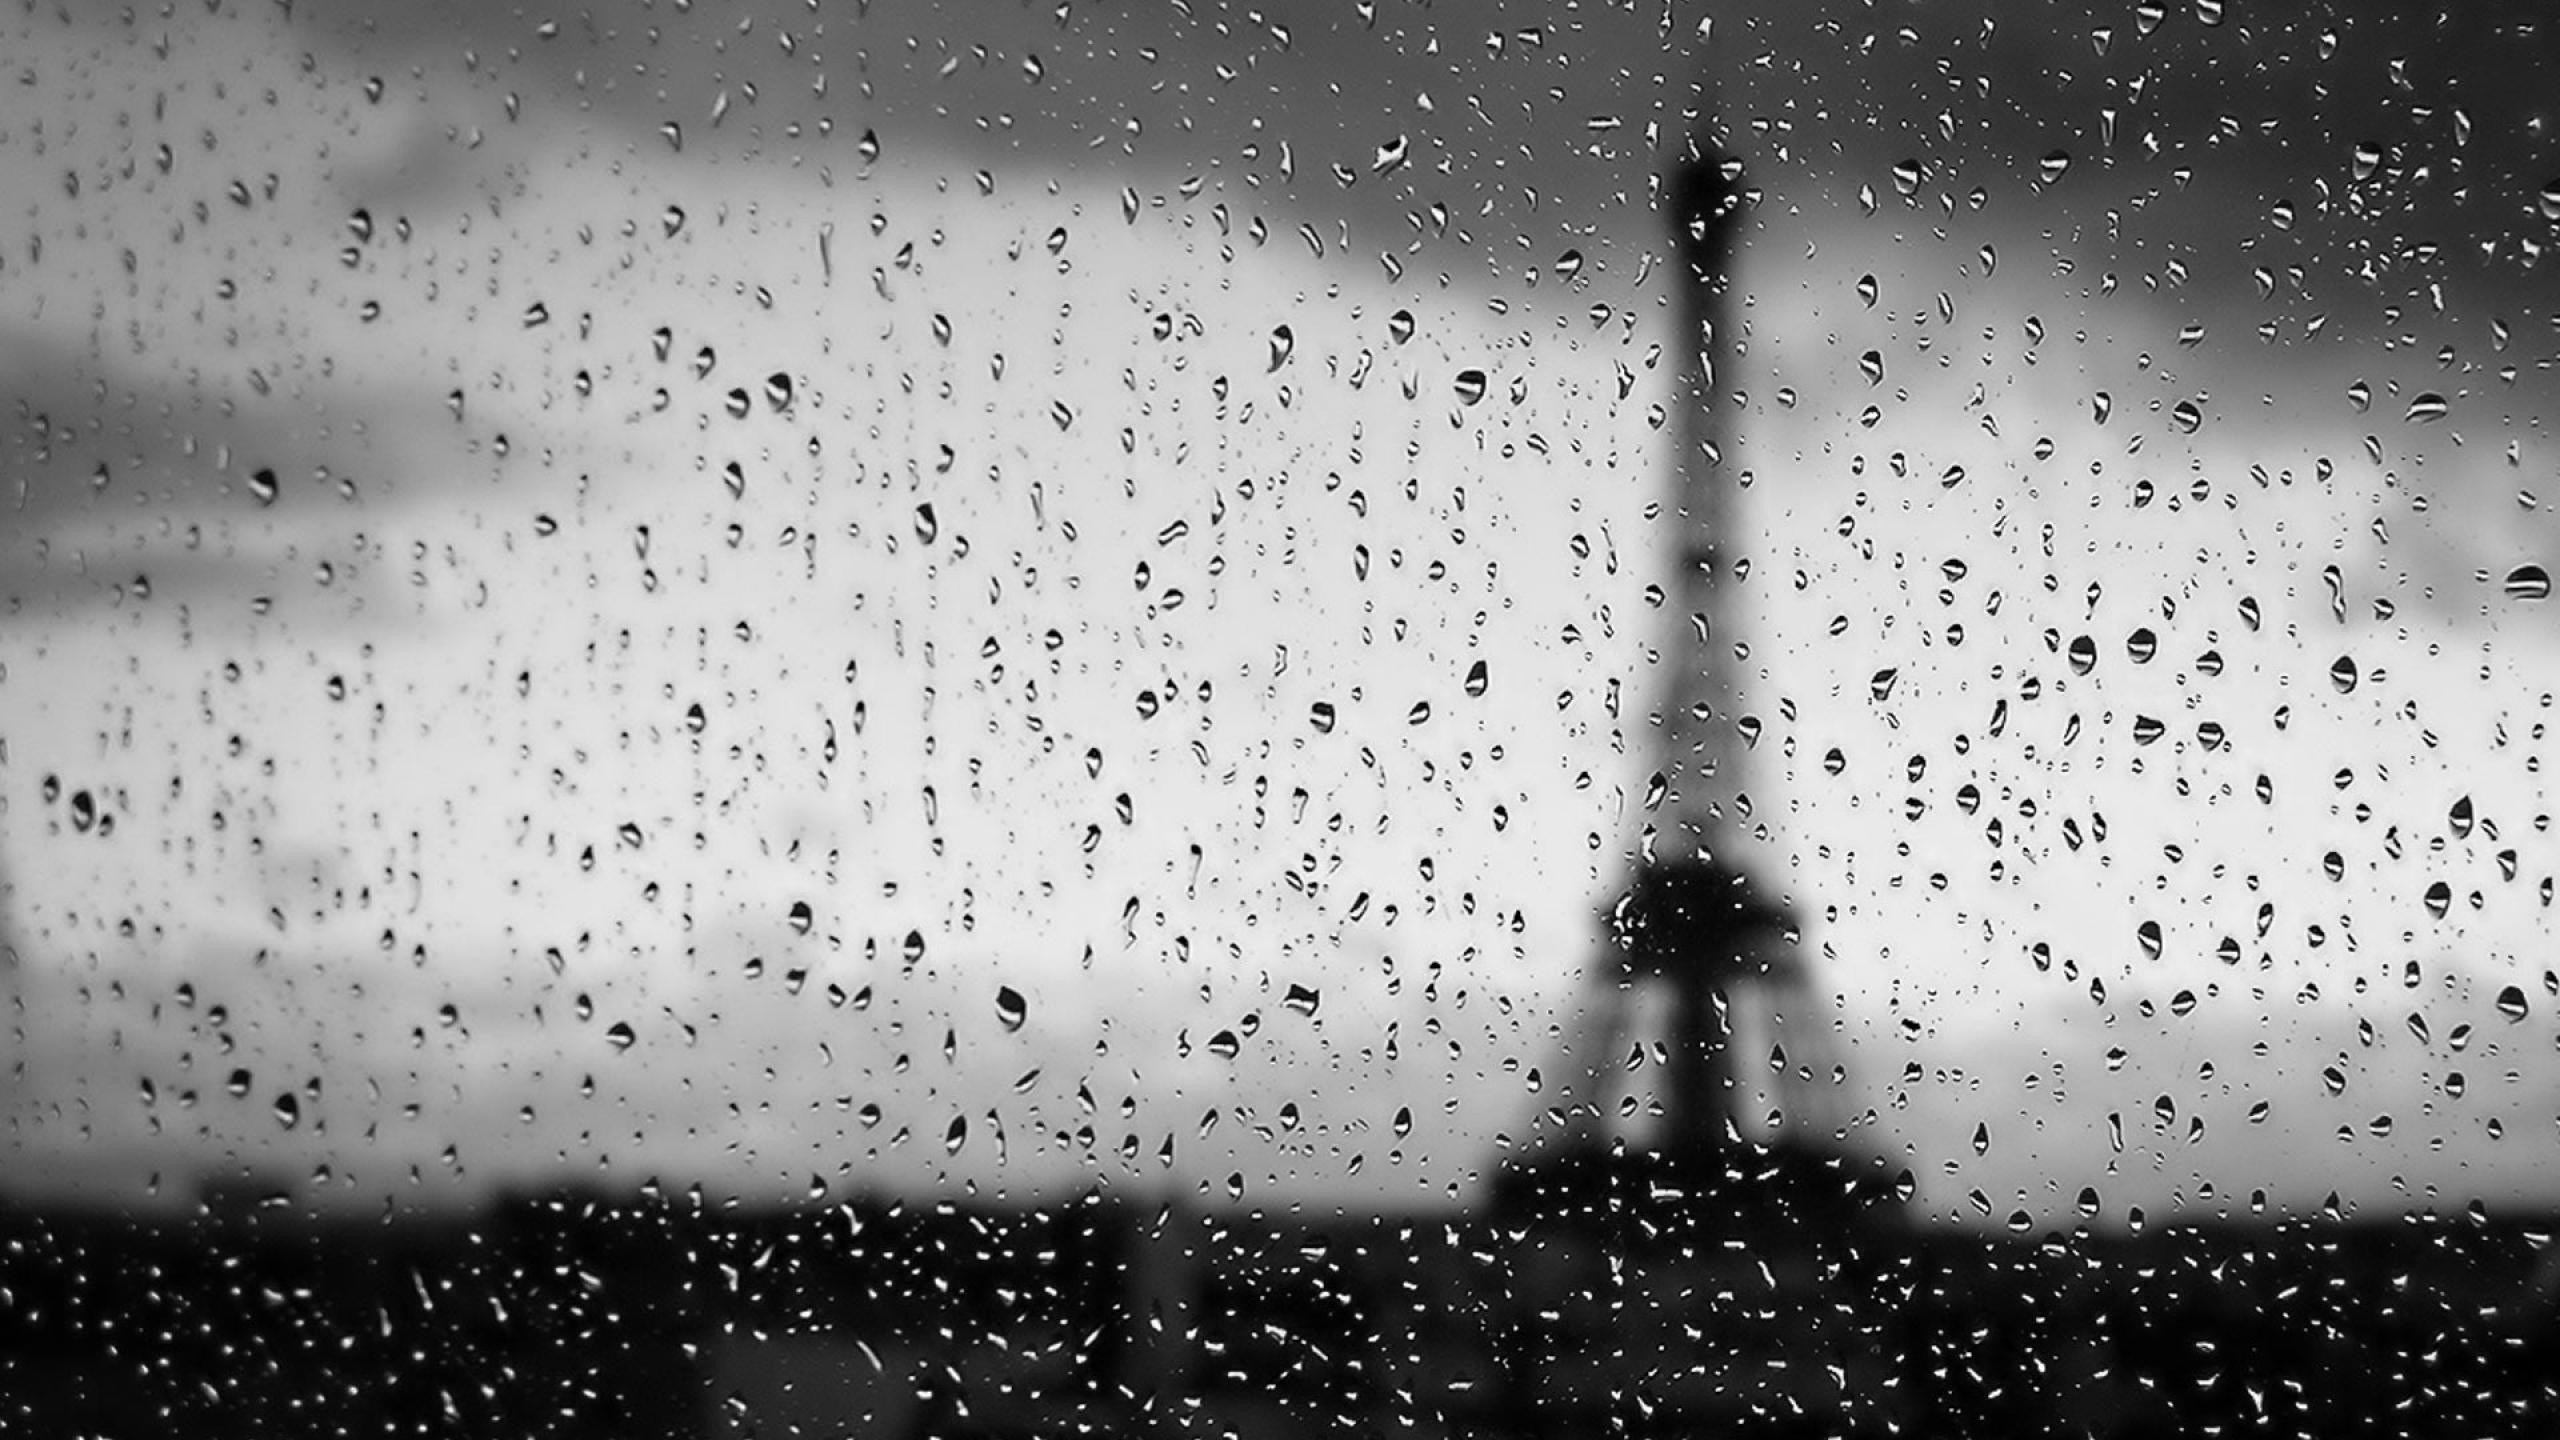 Eiffel Tower Water Black And White Wallpaper 2560x1440